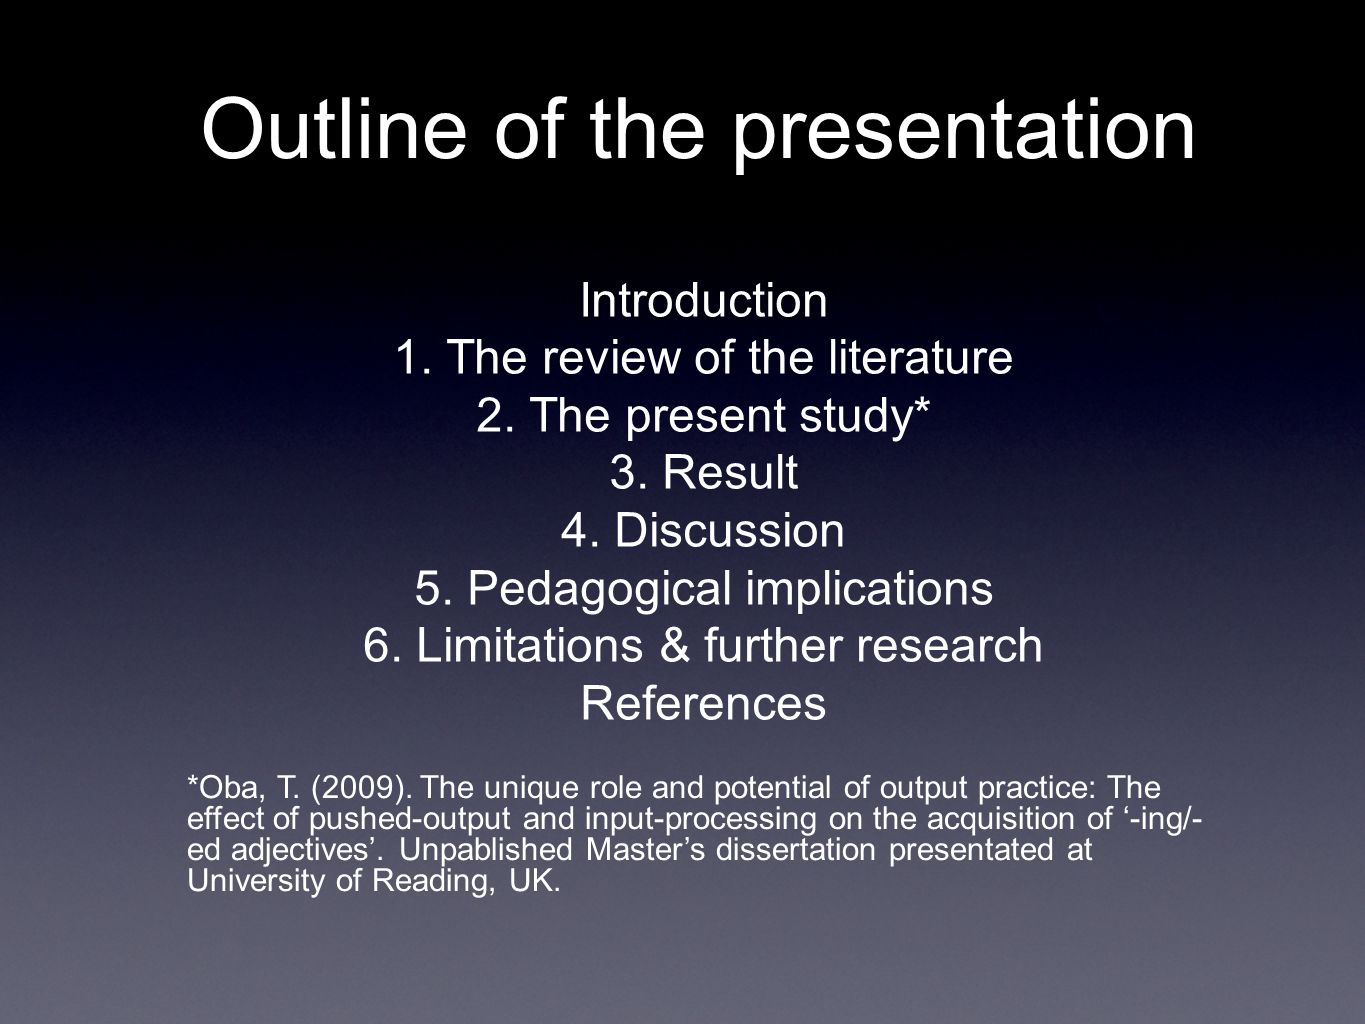 masters dissertation limitations Action research in mathematics education: this dissertation has been read by each member of the dissertation committee and limitations of the study.